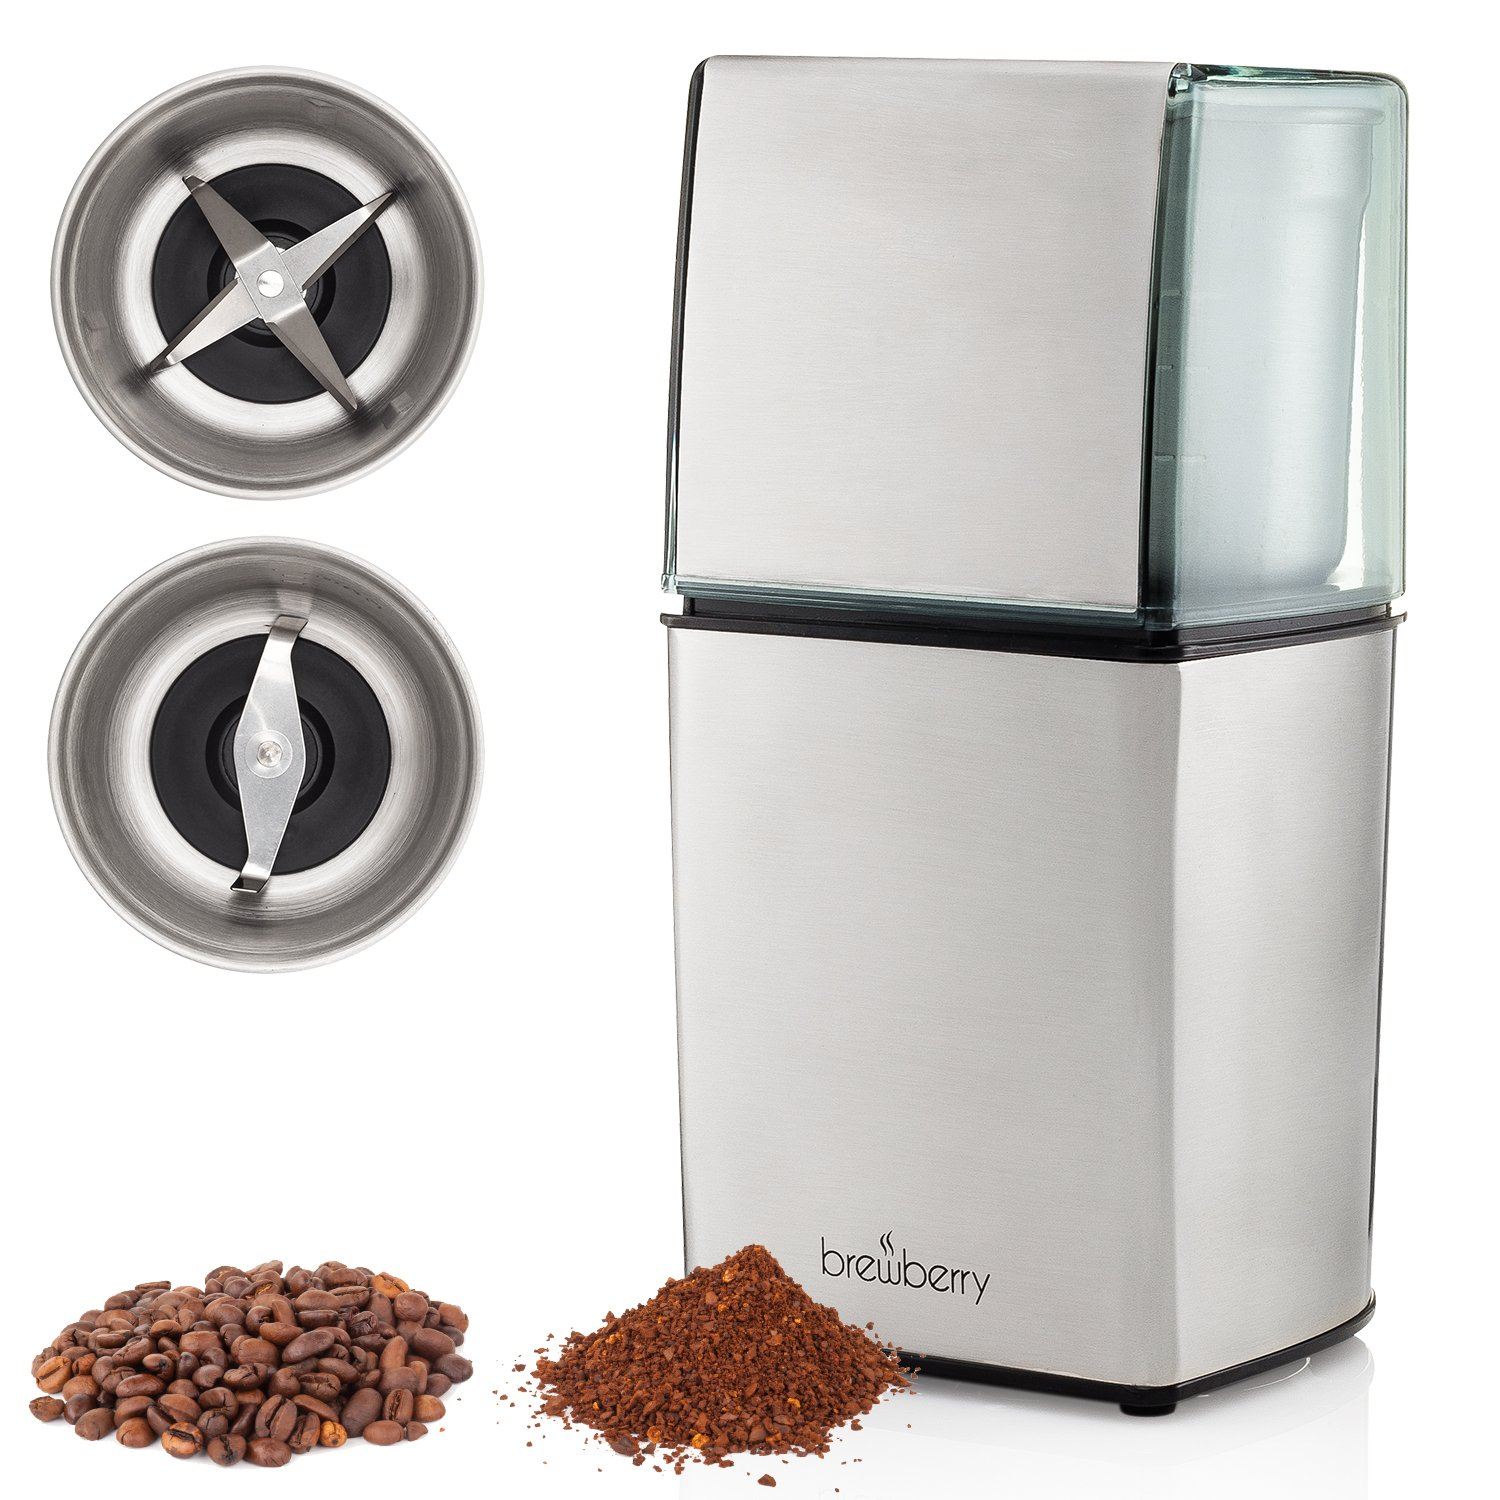 Brewberry Elite Series Electric Coffee Grinder, Espresso and Coffee Mill, Grinds Seeds, Spices, Coffee Beans, Nuts, Herbs and Beans, 2 High Precision Blades and 2 Removable Stainless Steel Cups